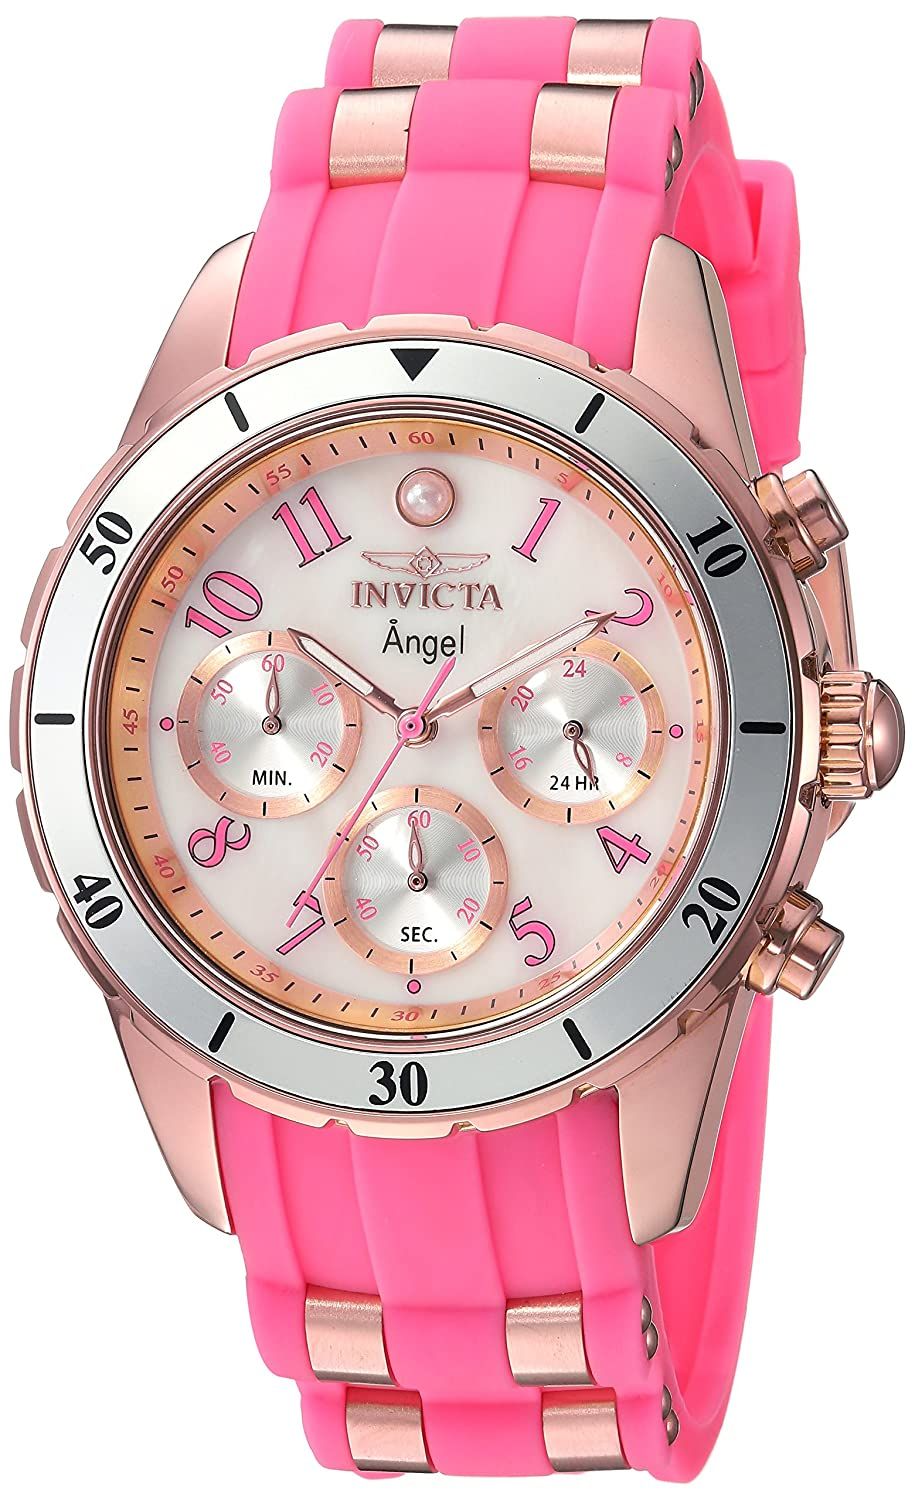 Invicta Women s Angel Quartz Watch with Silicone Stainless Steel Strap, Pink, 20 Model 24900